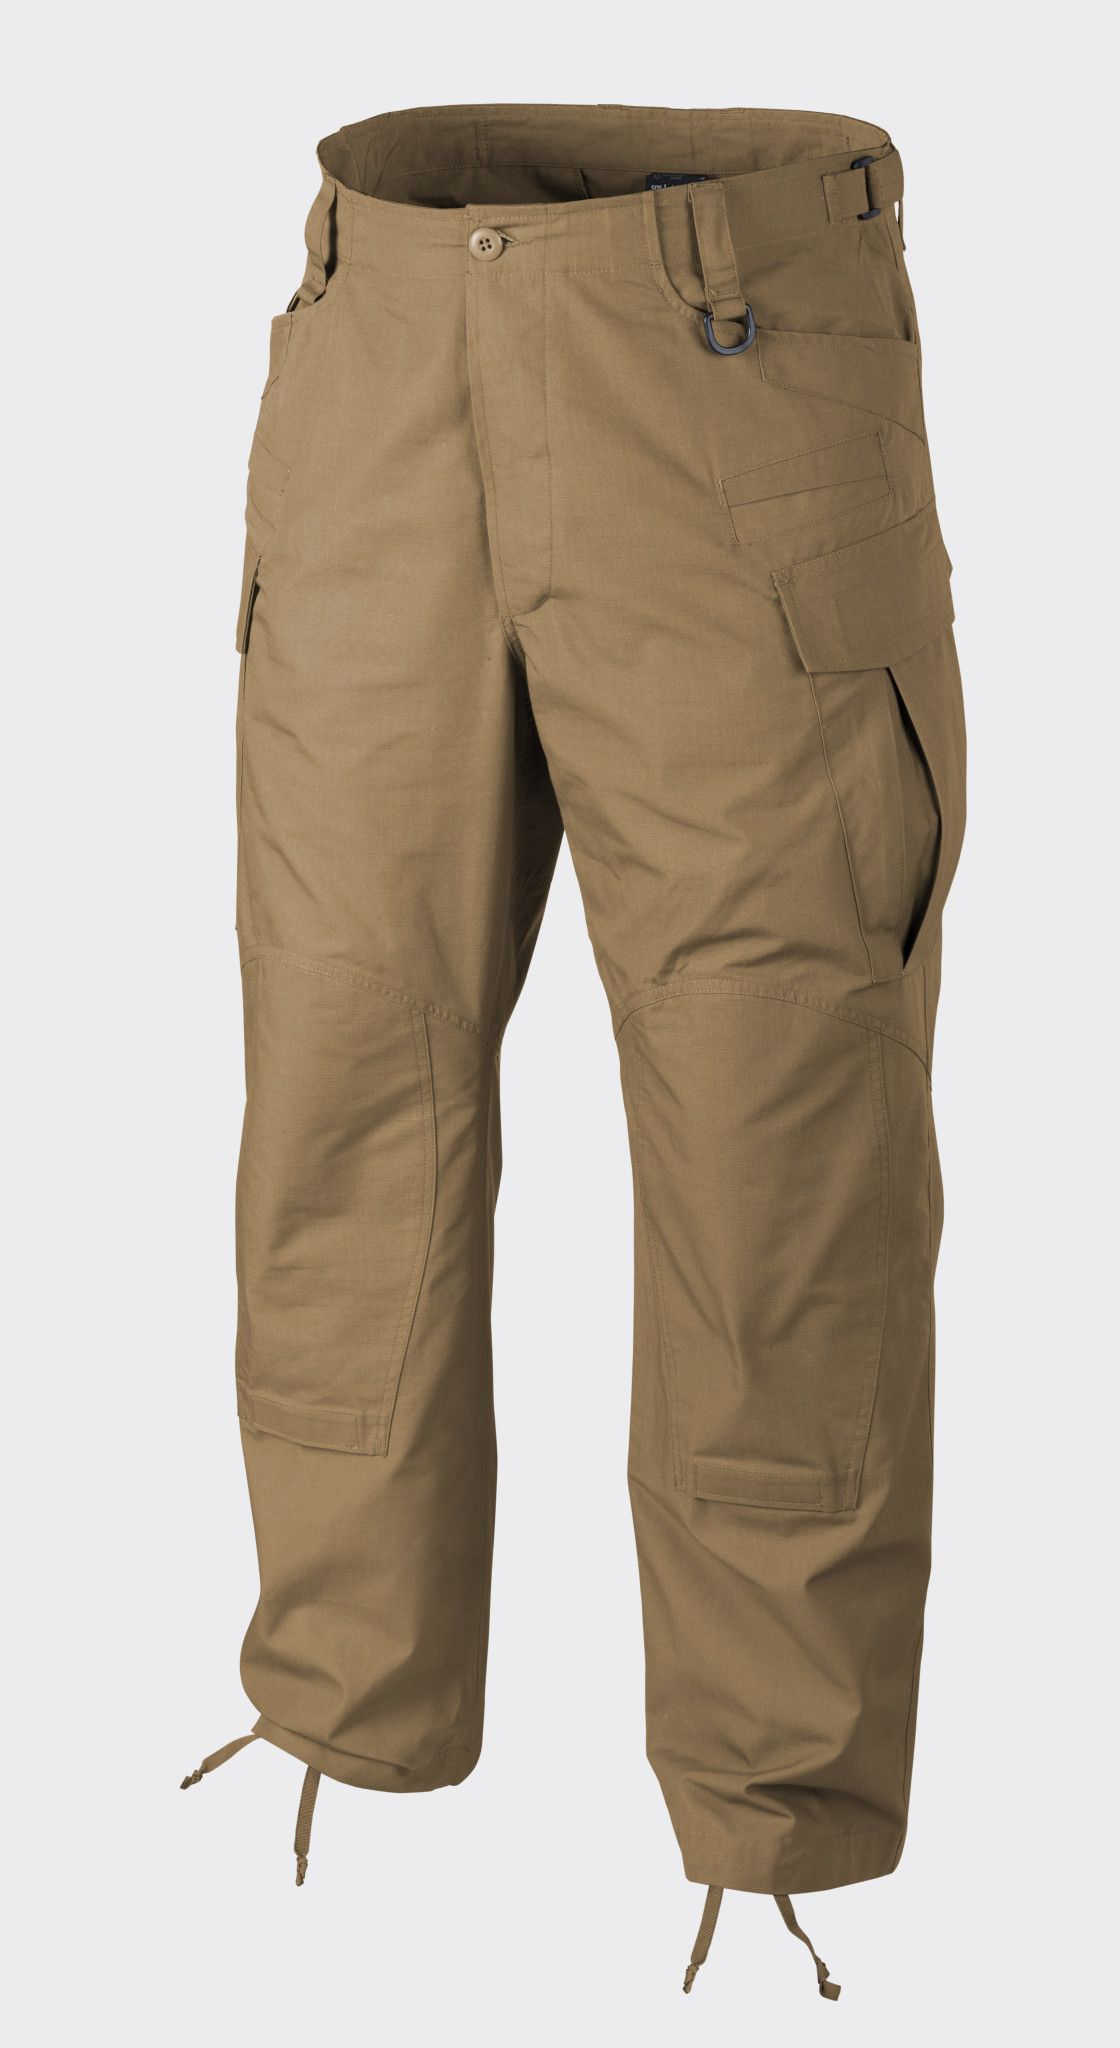 Helikon SFU Next Combat trousers - Olive Drab SFU NEXT® pants are ...